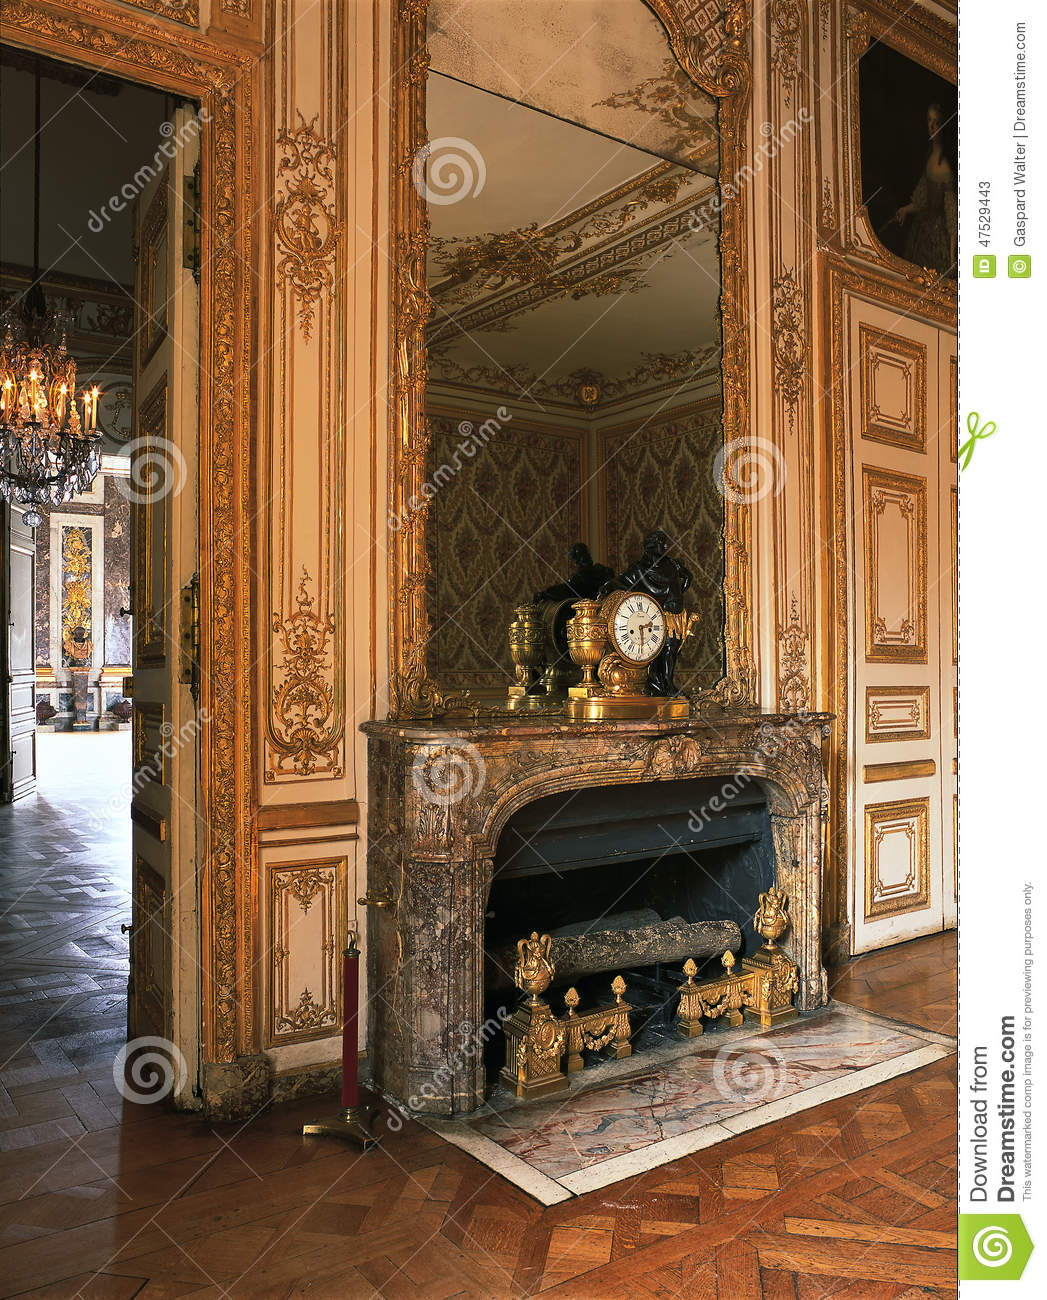 grand miroir sur une chemin e au palais de versailles france photo stock ditorial image. Black Bedroom Furniture Sets. Home Design Ideas